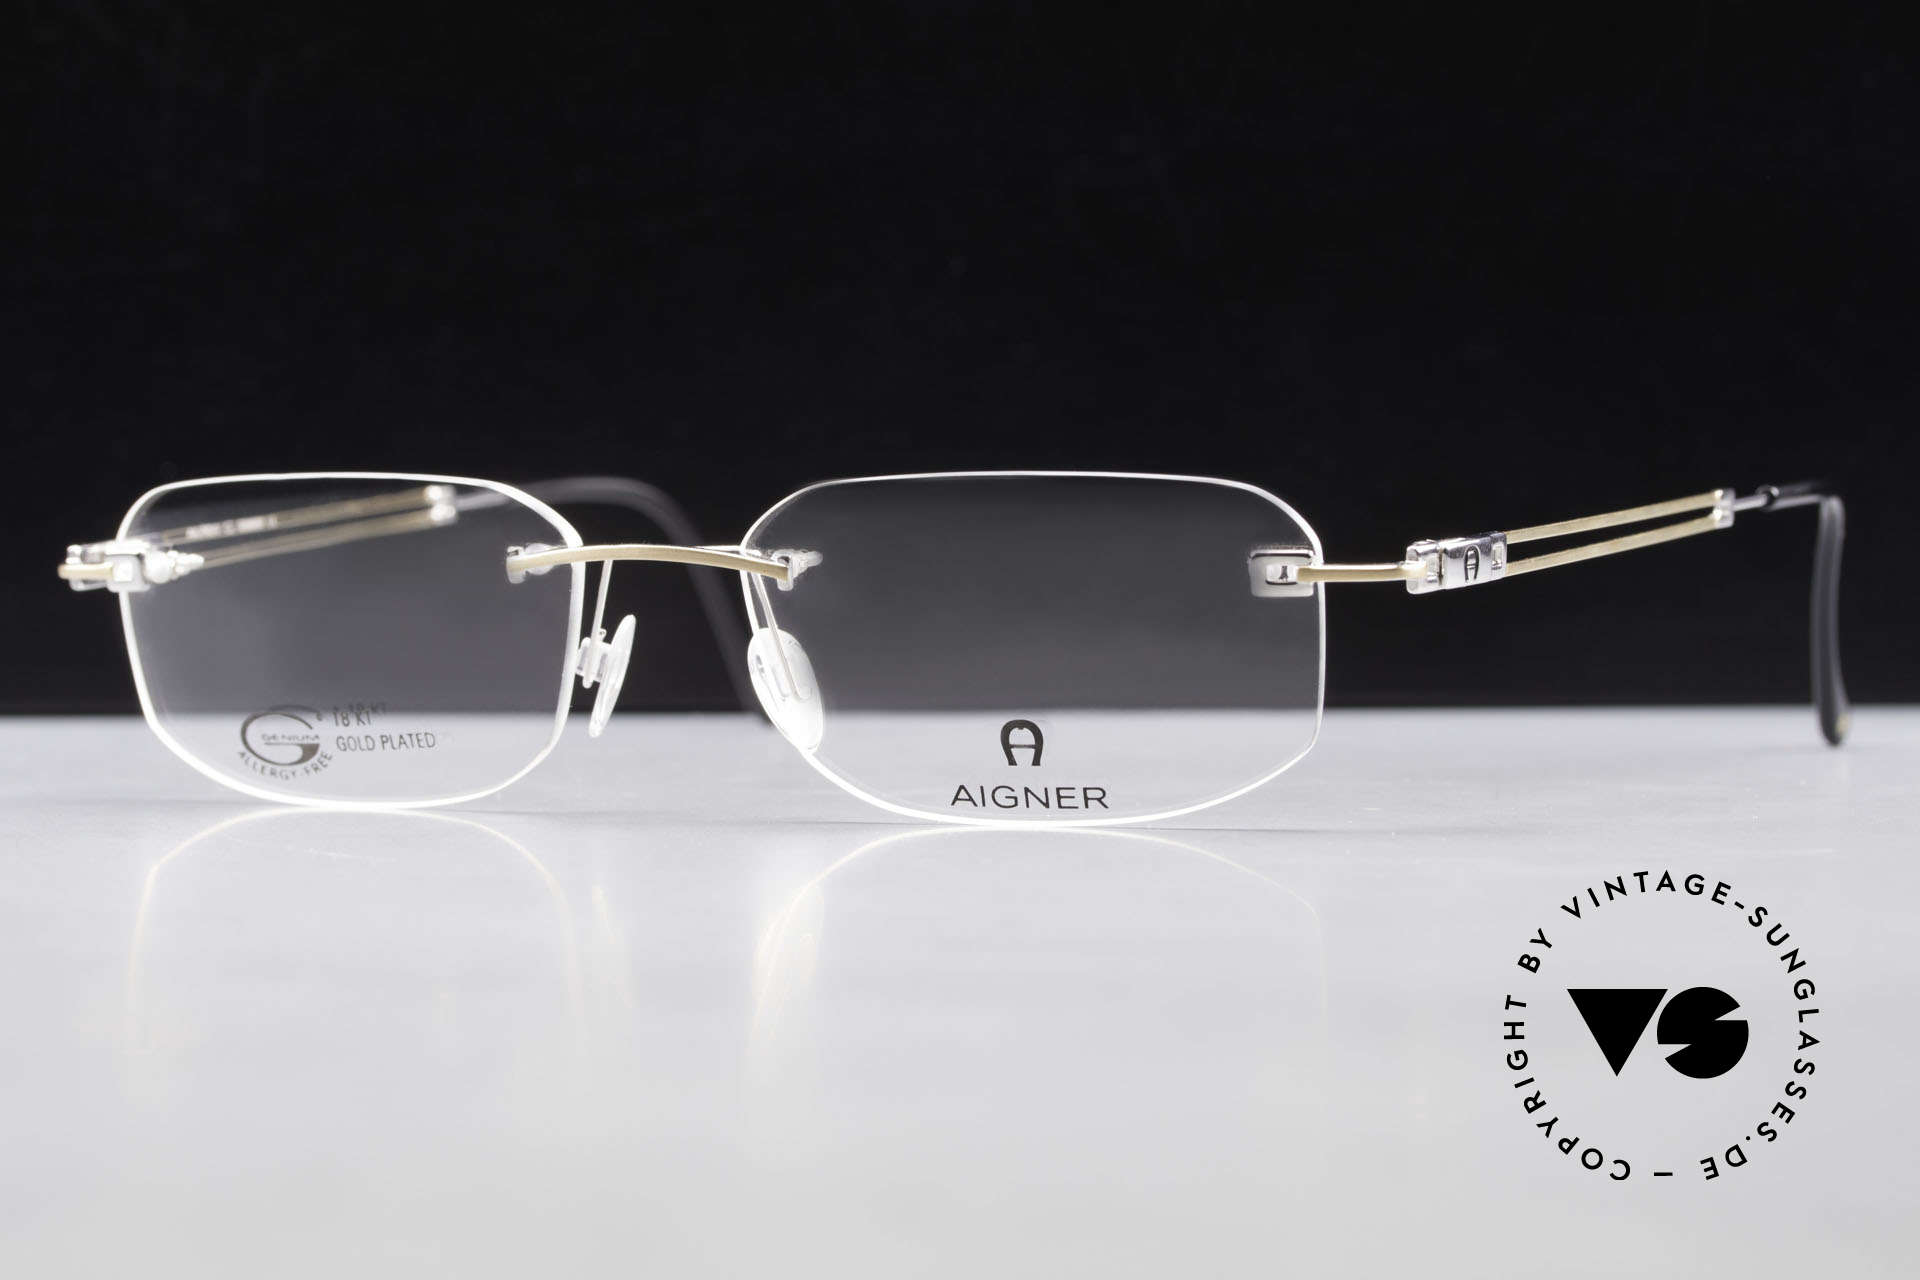 Aigner EA113 Unisex Rimless 90's Glasses, Size: large, Made for Men and Women